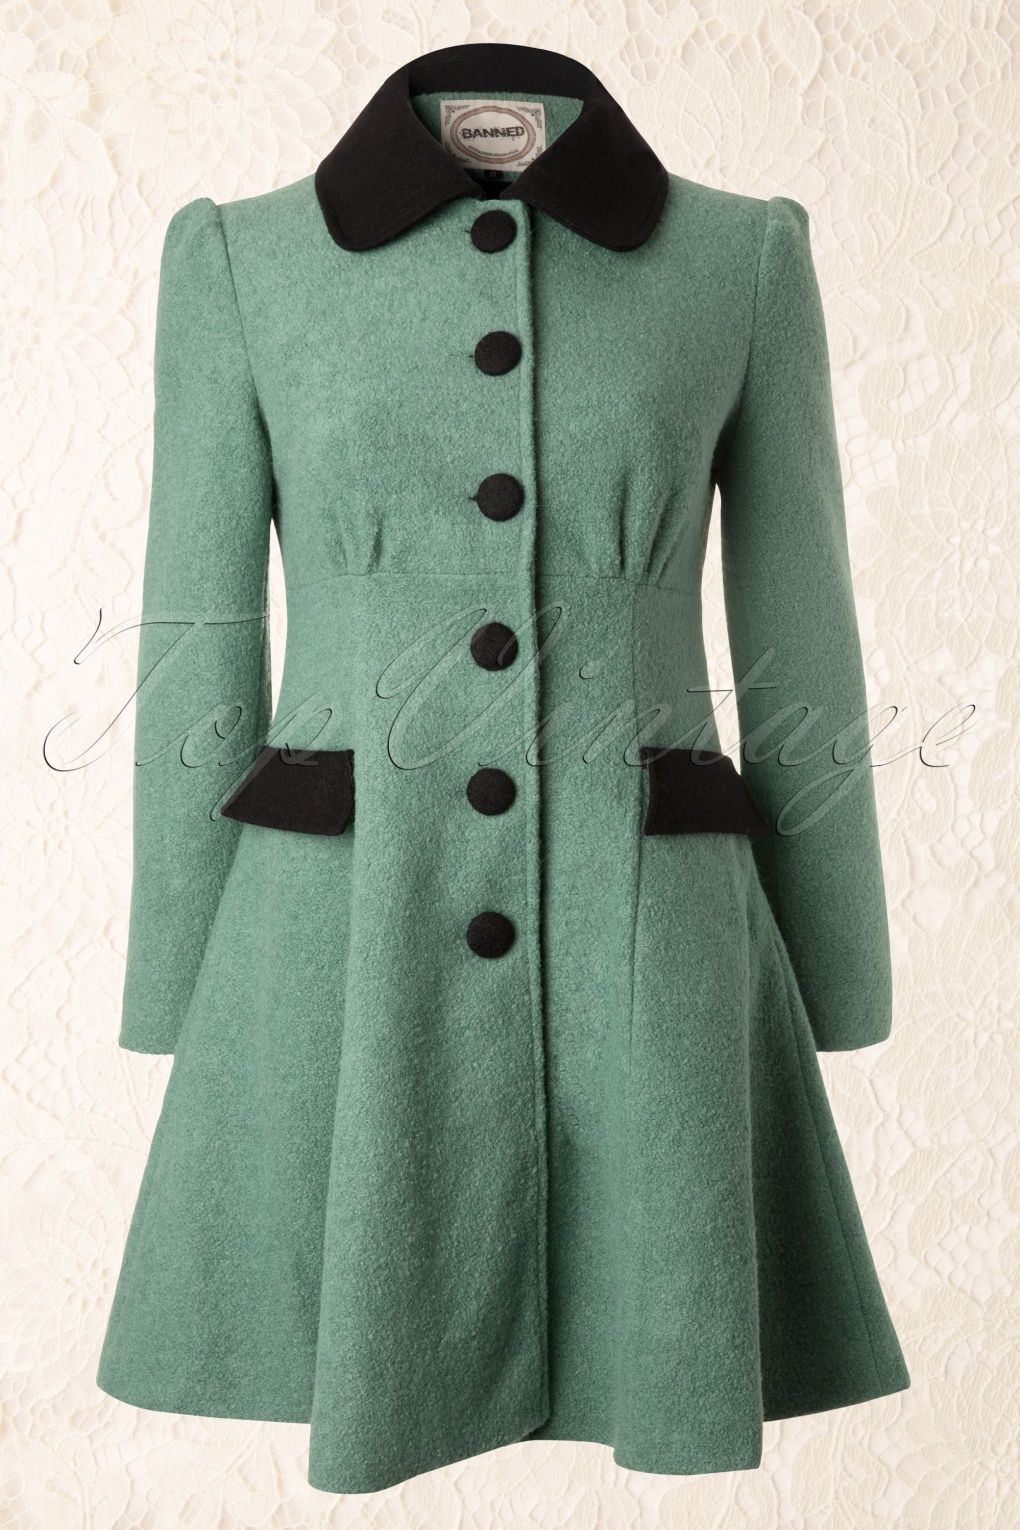 50s Elegant Black and Mint Winter Coat | Retro | Pinterest ...